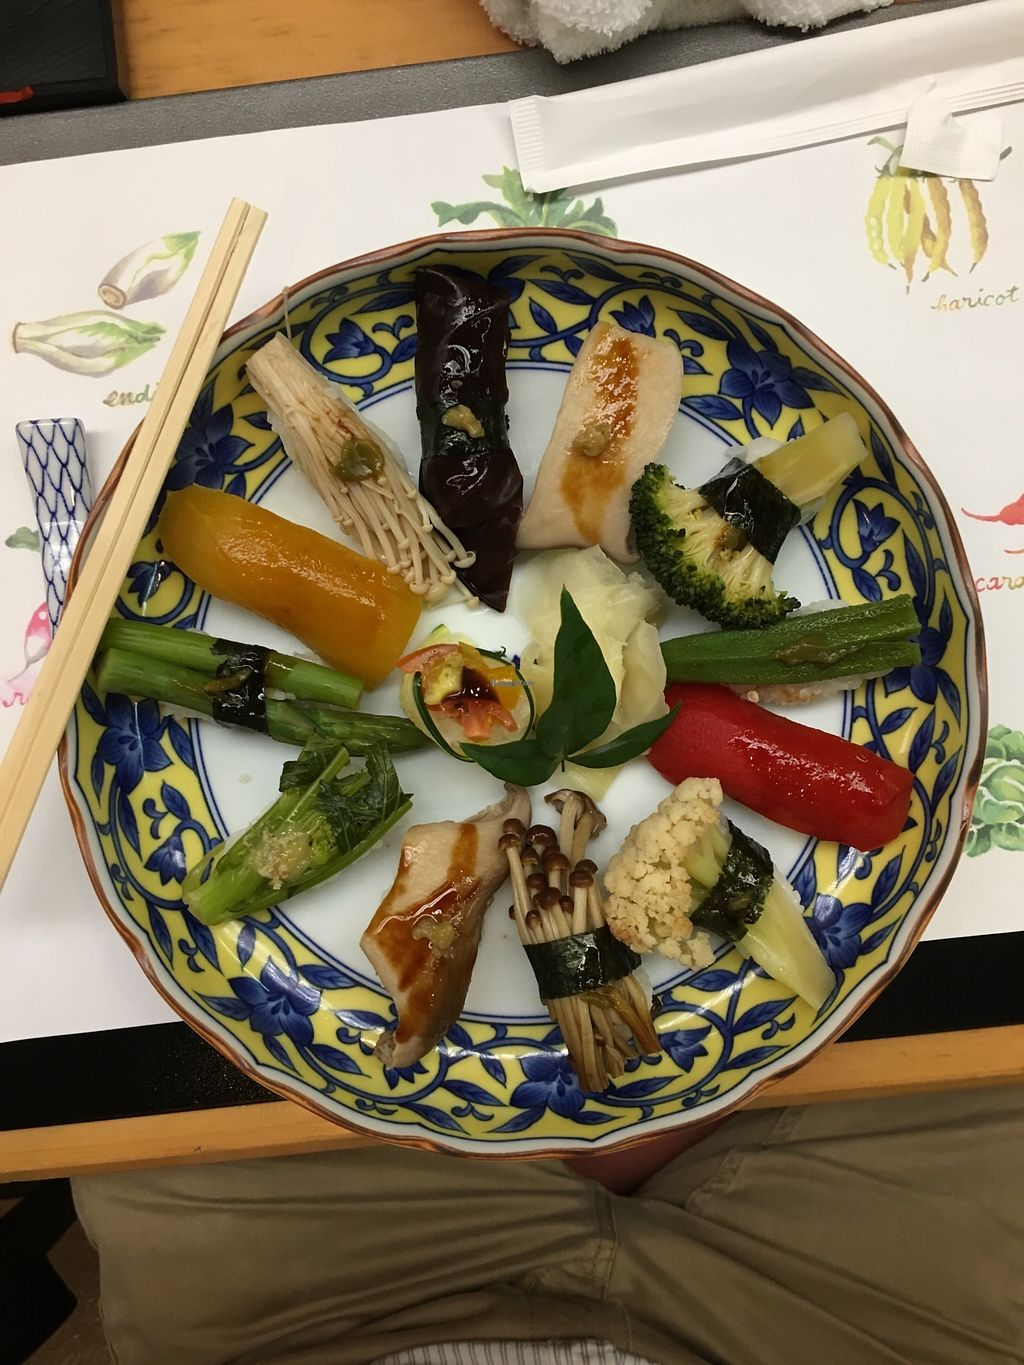 "Photo of Sushi Sansui  by <a href=""/members/profile/RobertoGuerra"">RobertoGuerra</a> <br/>Delicious selection of vegan sushi <br/> January 14, 2018  - <a href='/contact/abuse/image/109413/346379'>Report</a>"